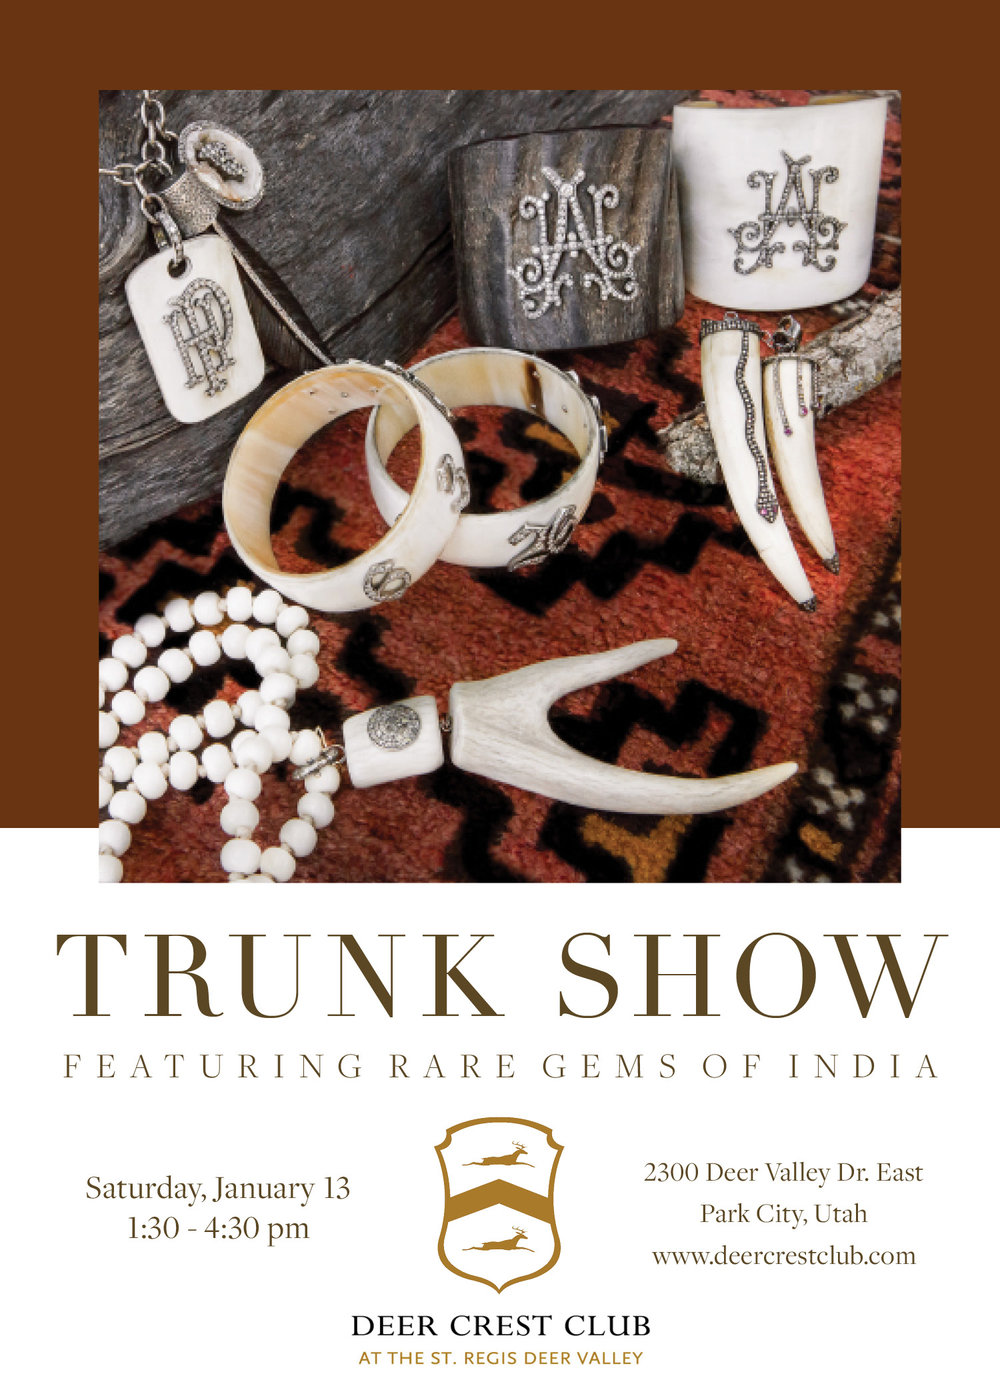 Trunk show invitation for jewelry designer client.